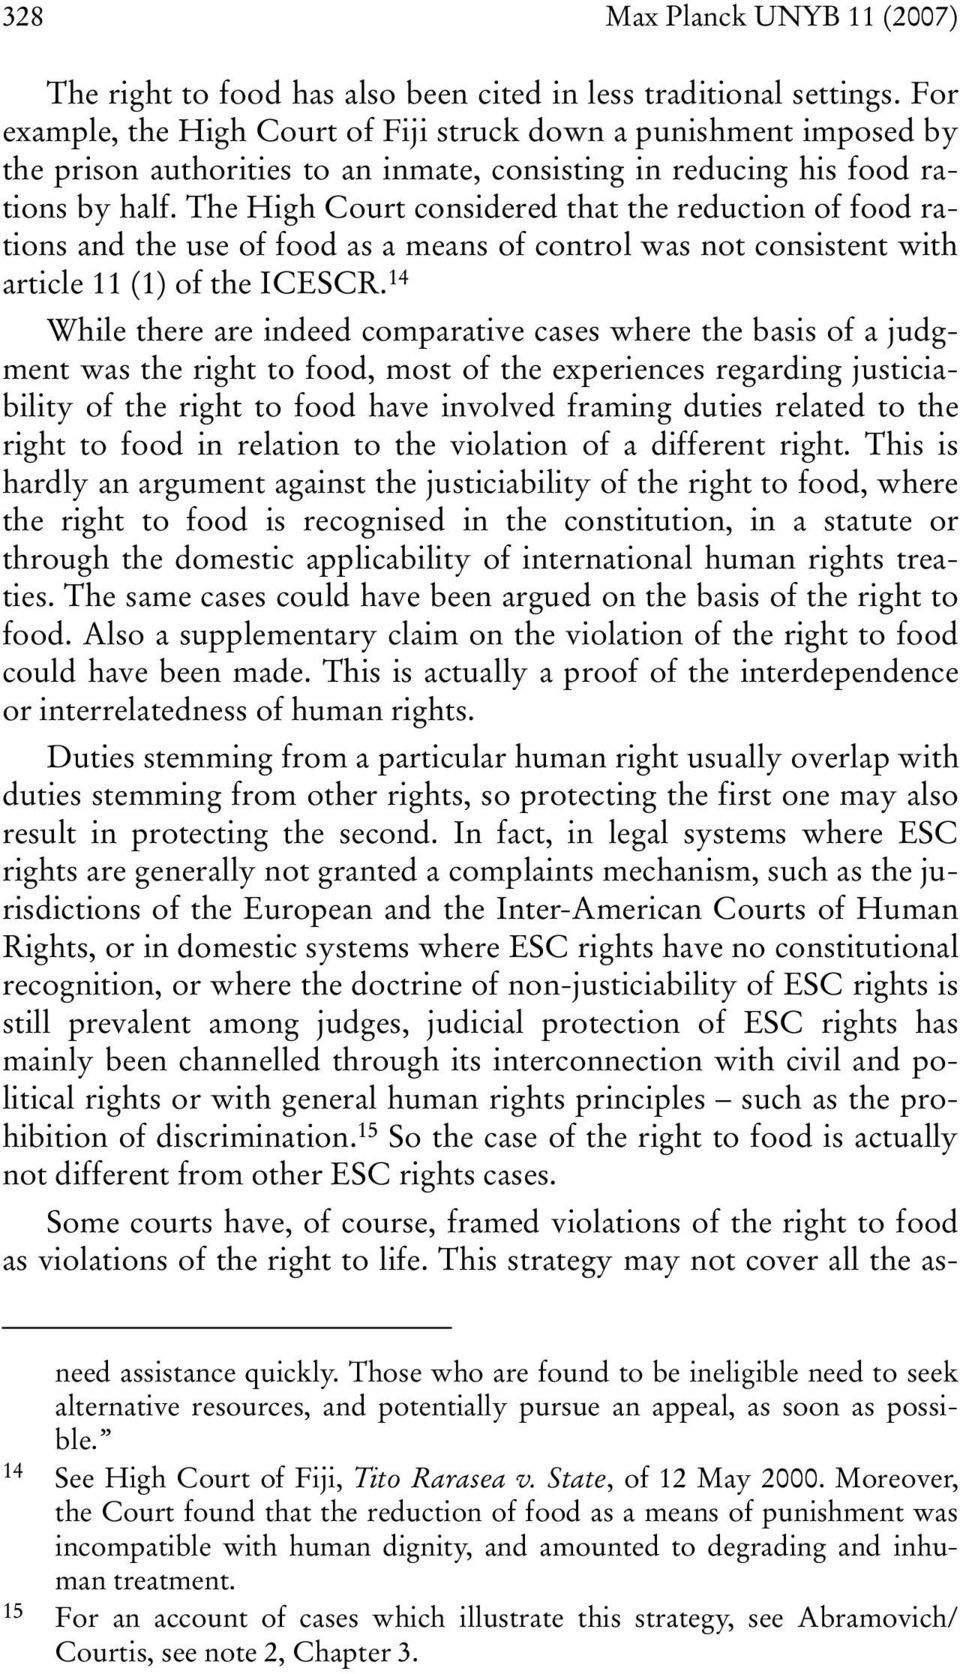 The High Court considered that the reduction of food rations and the use of food as a means of control was not consistent with article 11 (1) of the ICESCR.